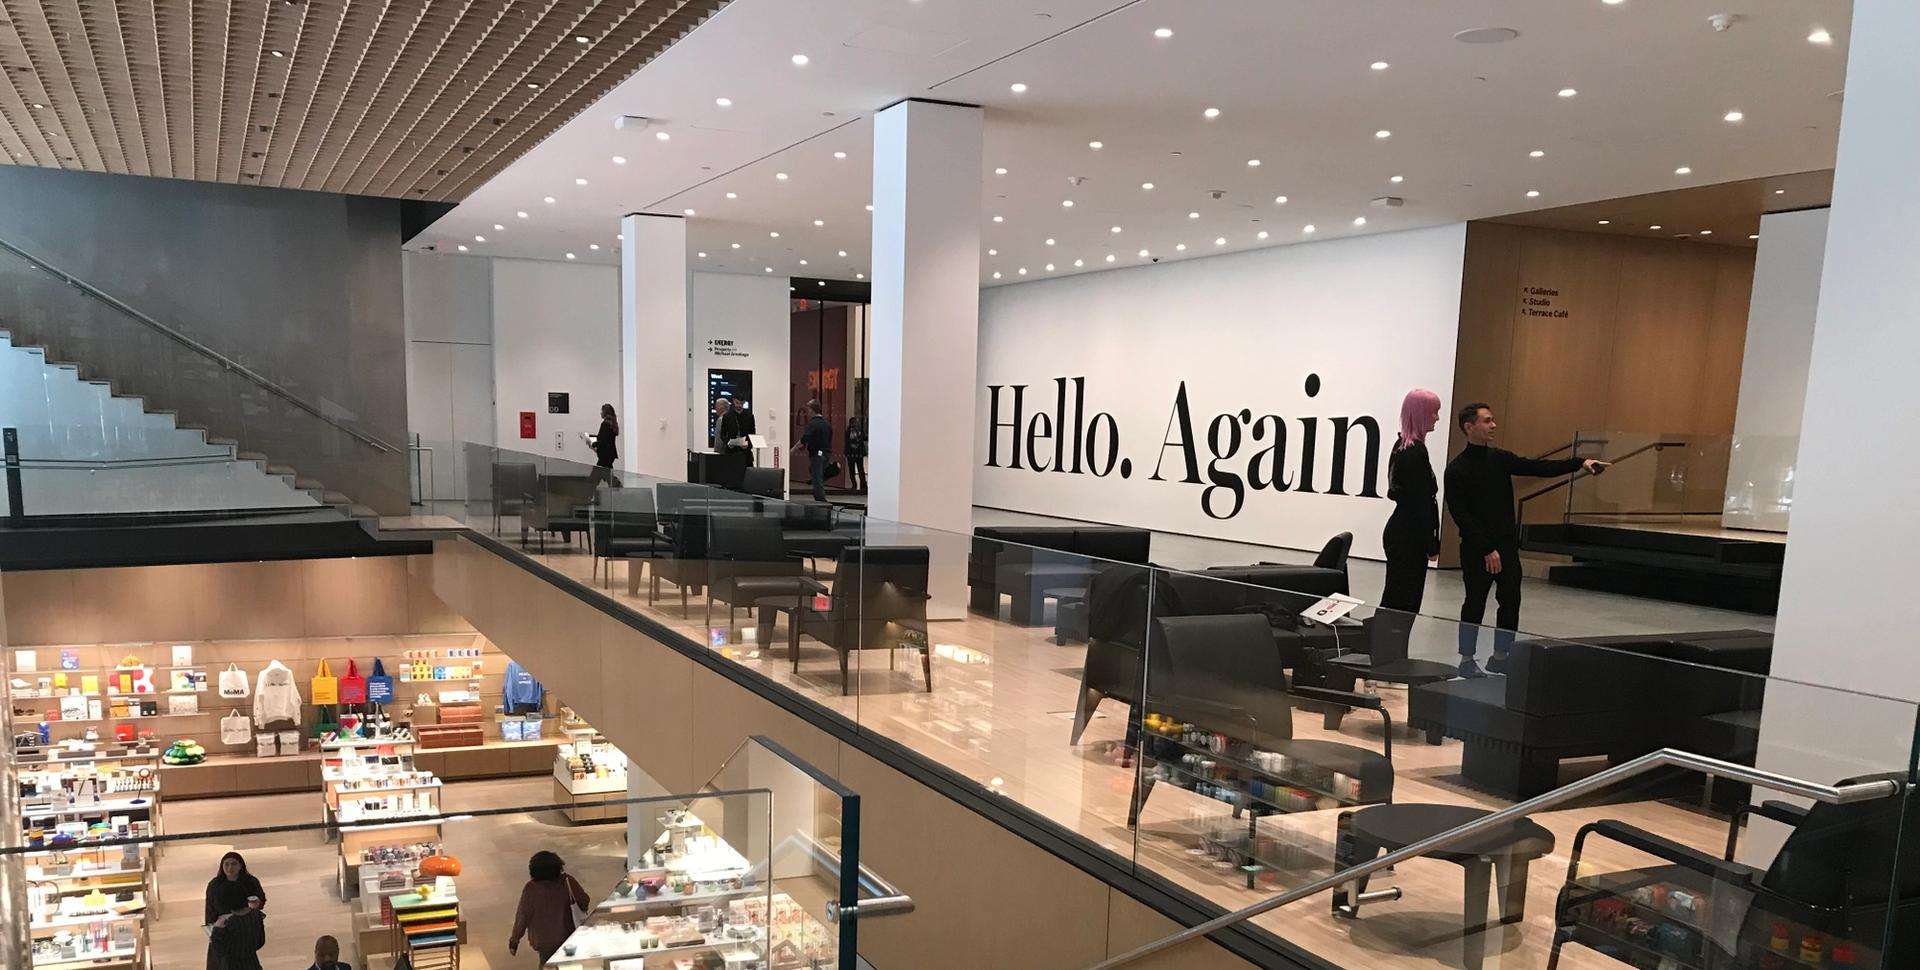 Visitors entering the newly reopened Museum of Modern Art from 53rd Street will be greeted by a more open ground floor lobby designed by Diller Scofidio + Renfro that unites the Taniguchi building with the Jean Nouvel tower Helen Stoilas, The Art Newspaper